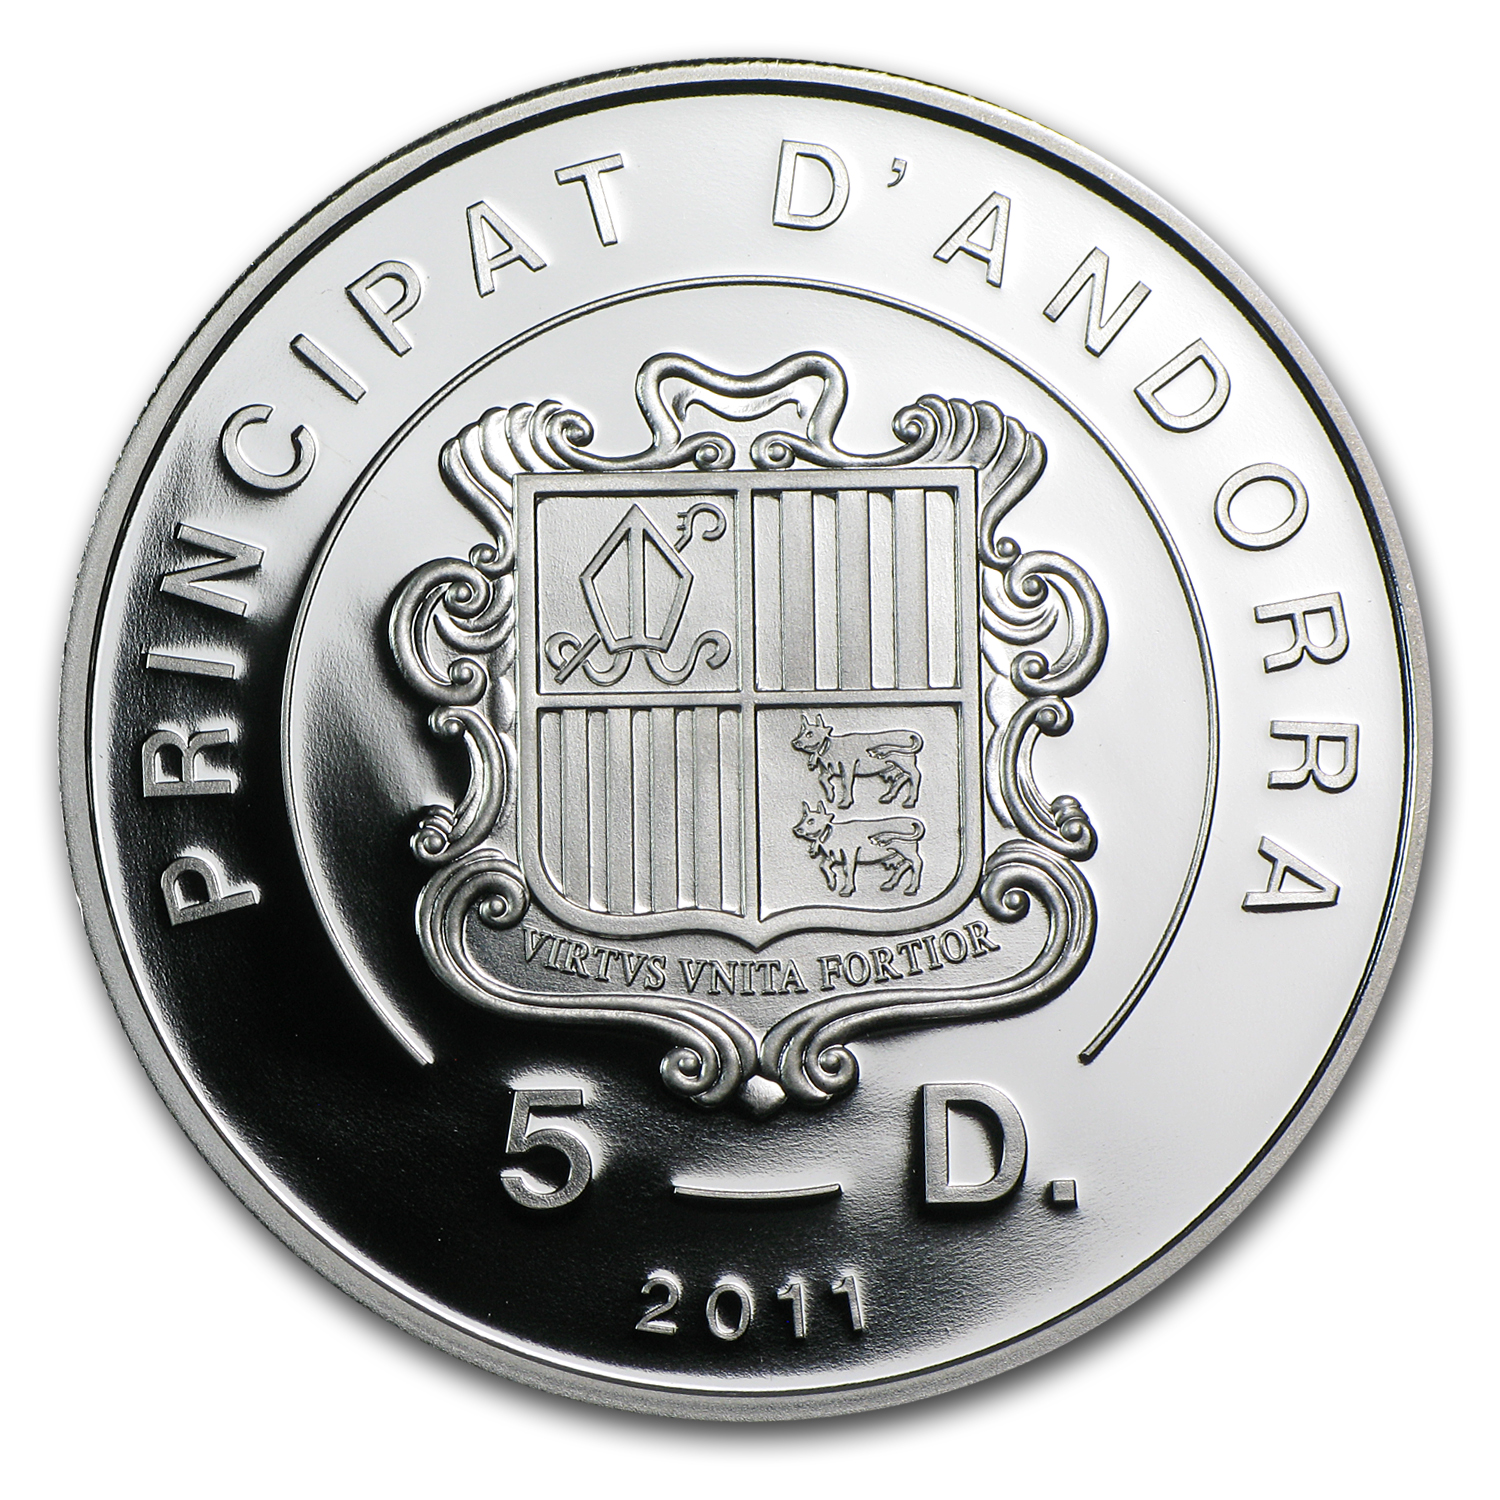 2011 Andorra Proof Silver 5 Diners Beatification of John Paul II